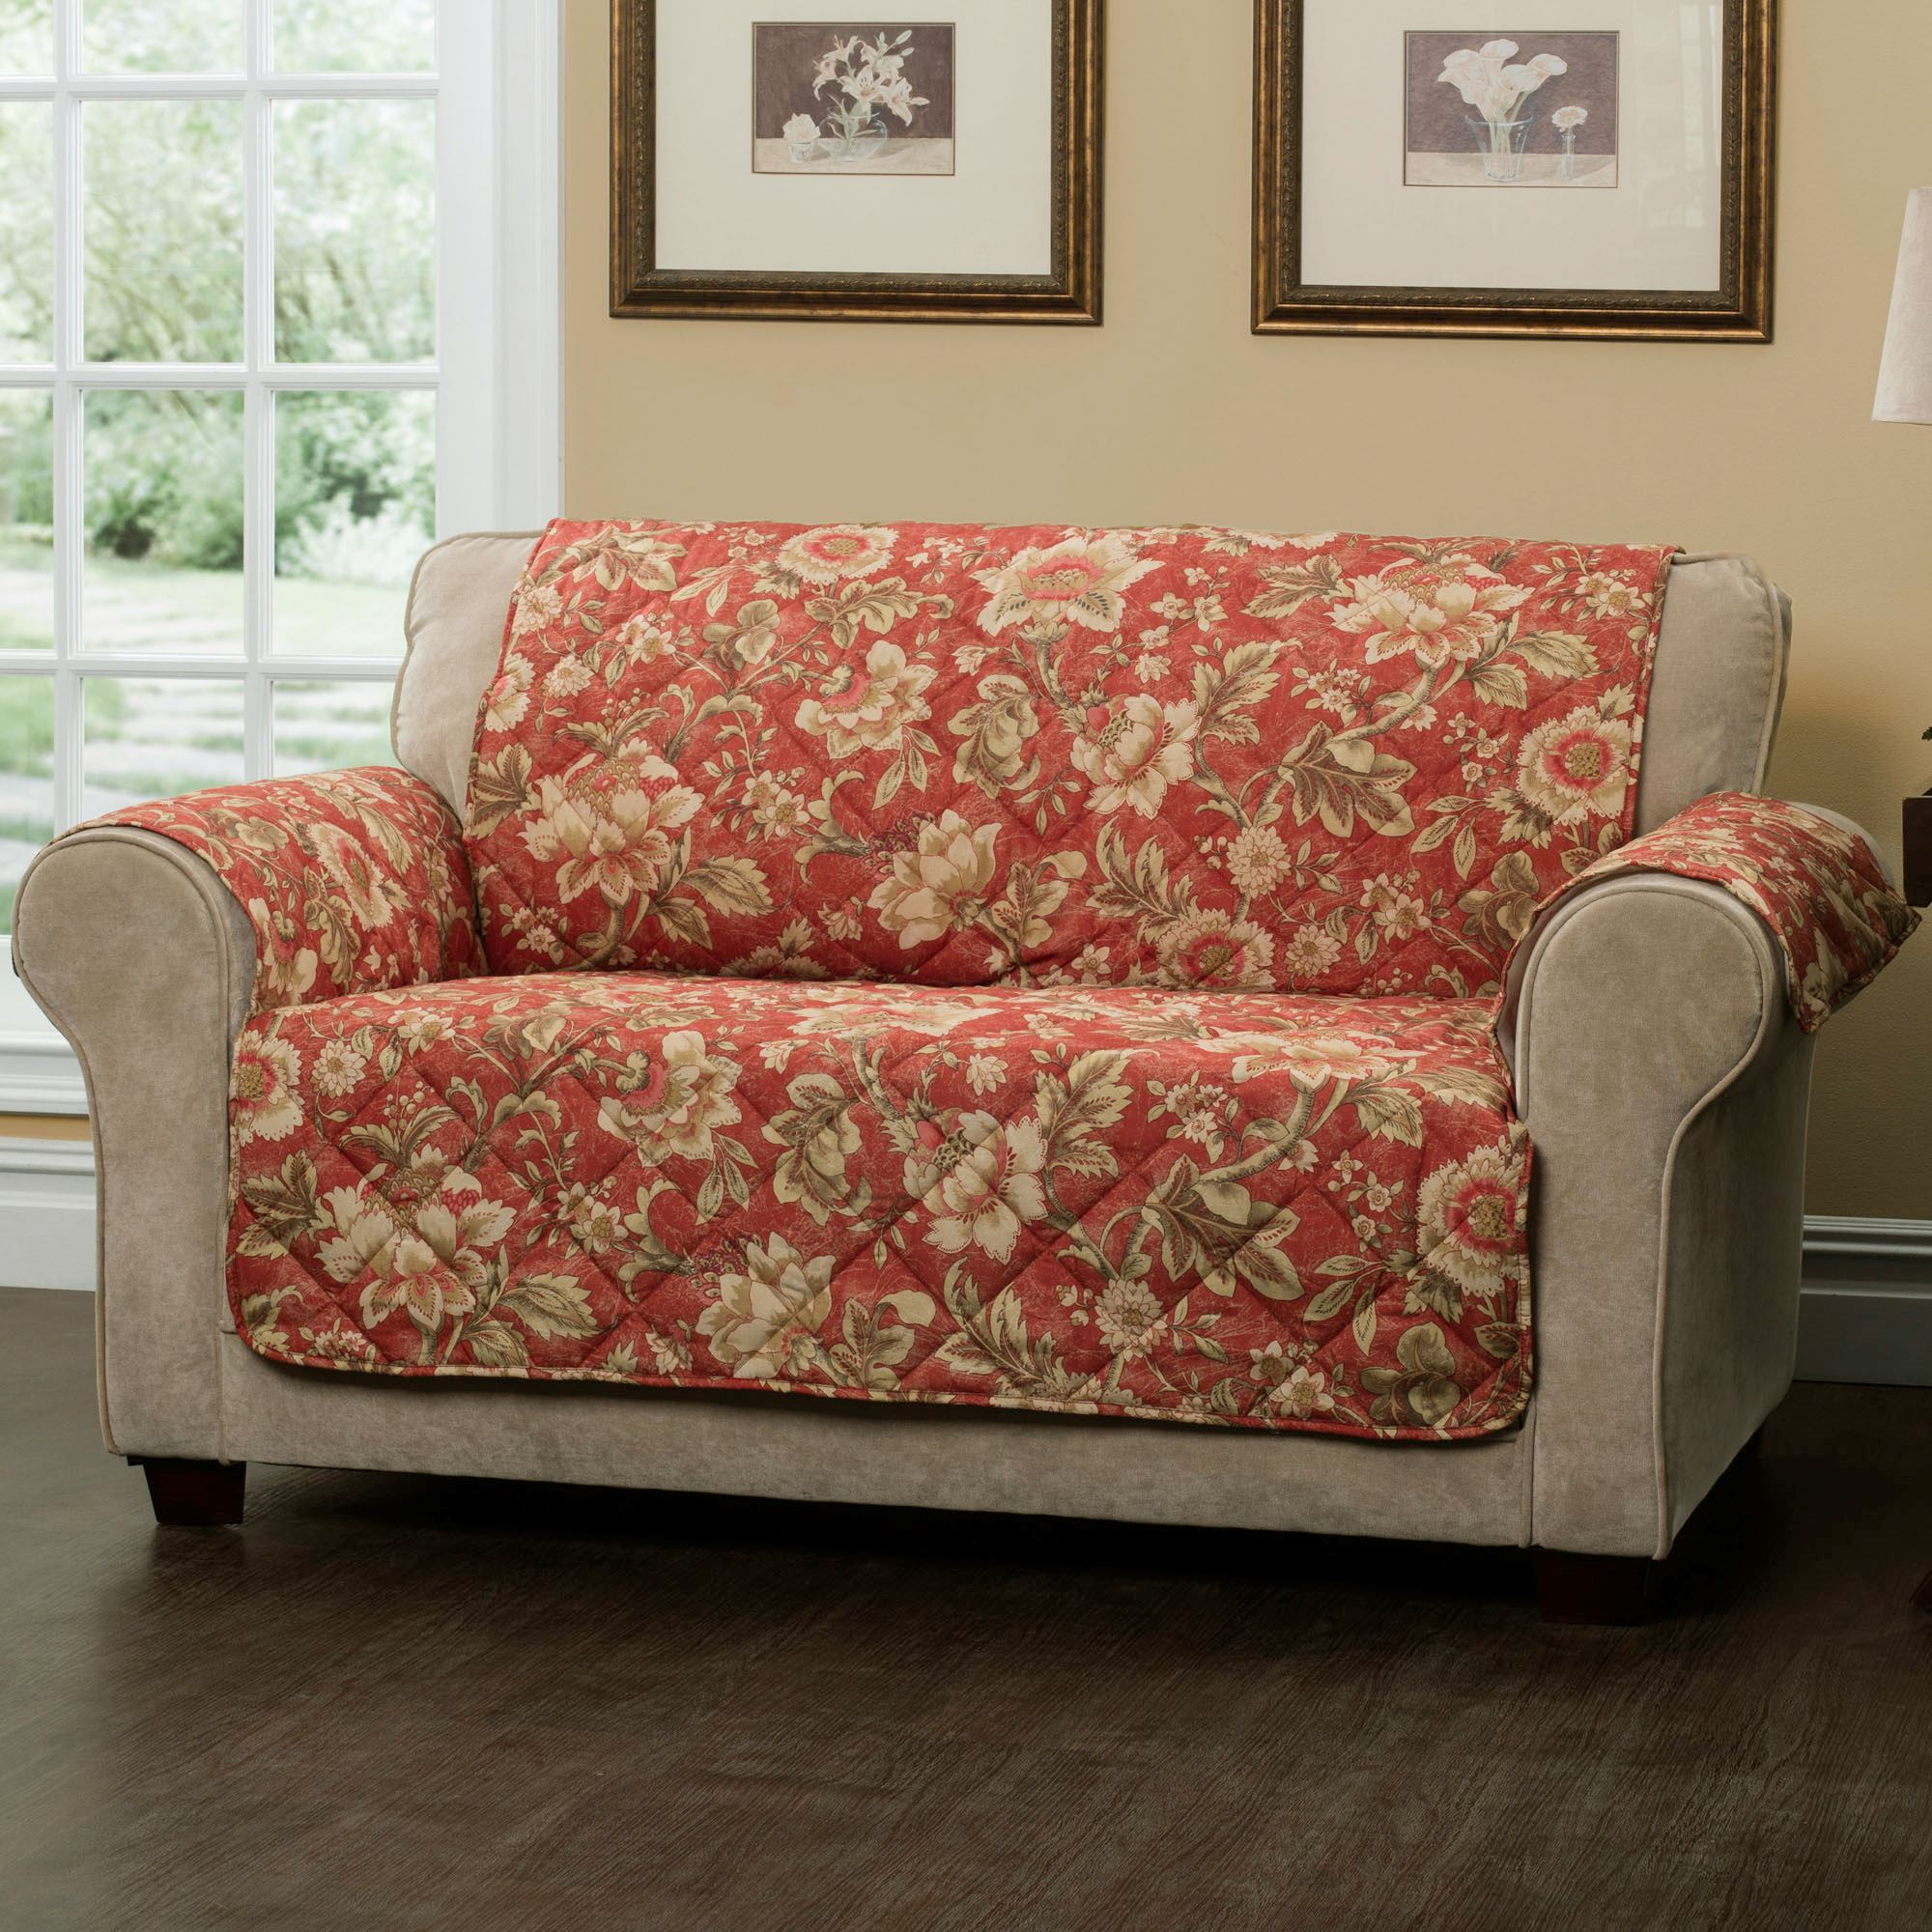 Aviston Sunset Jacobean Floral Furniture Protectors